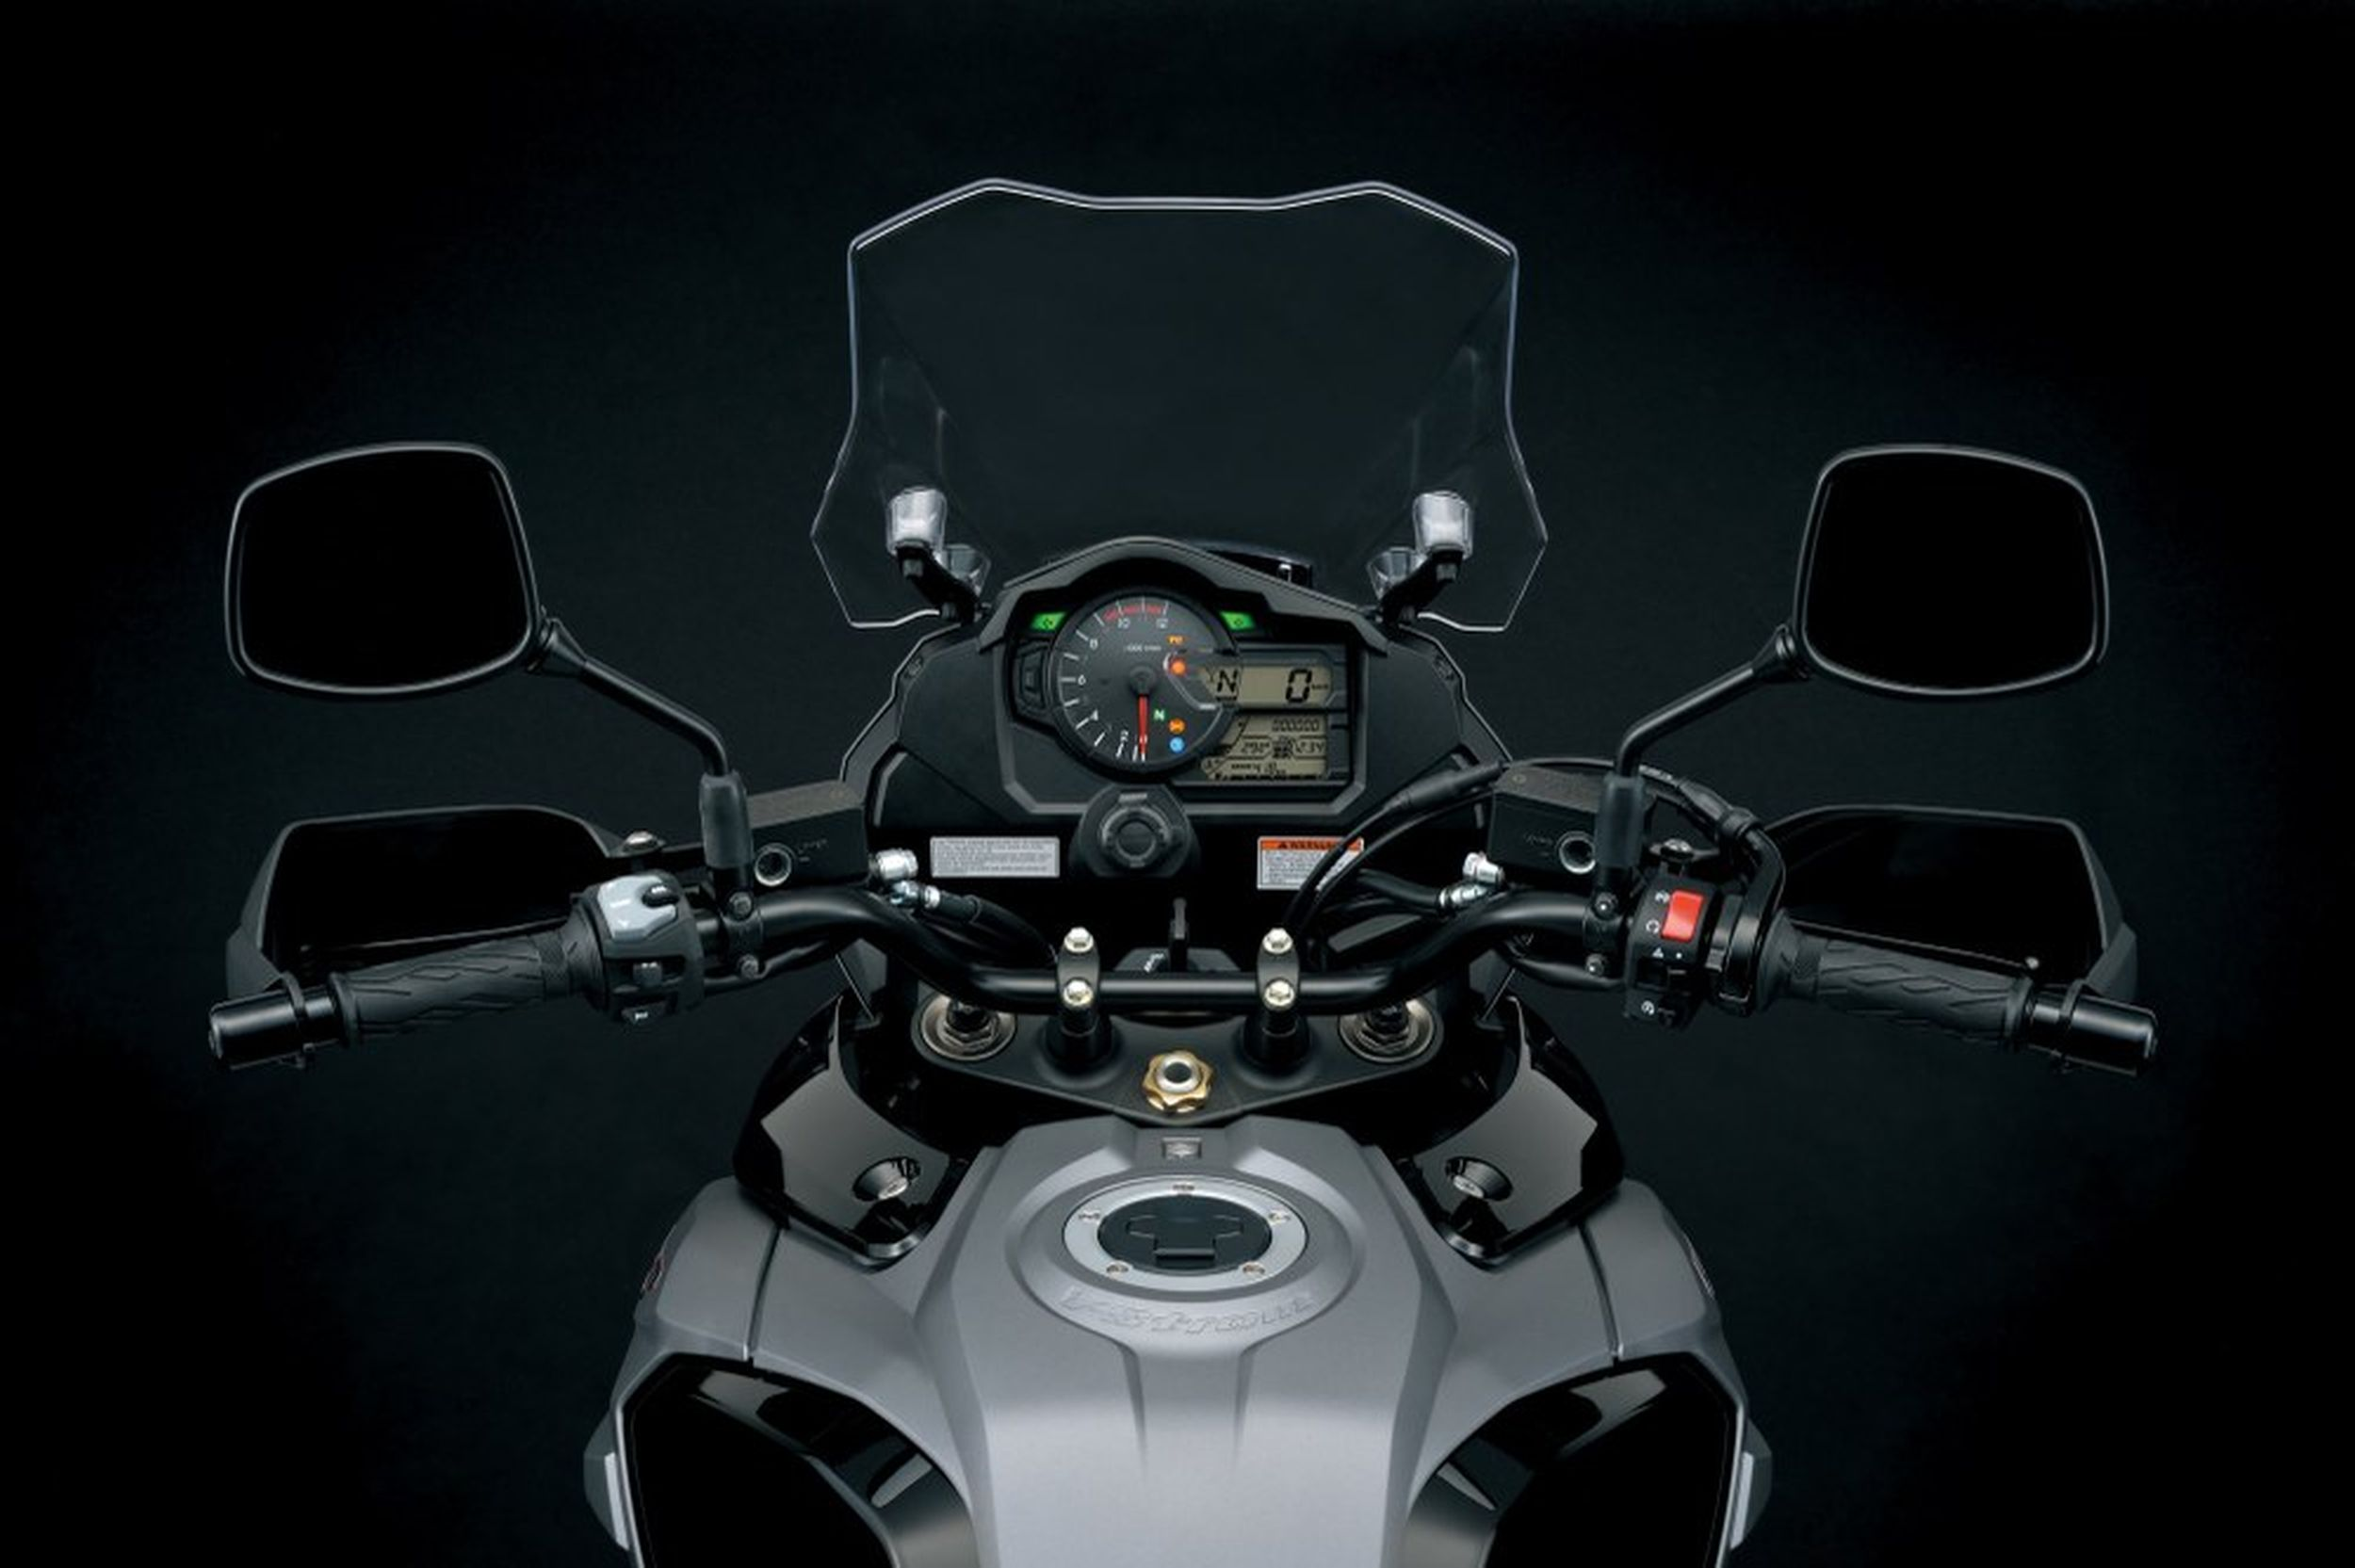 suzuki v strom 1000 test t ff 39 s bilder technische daten. Black Bedroom Furniture Sets. Home Design Ideas